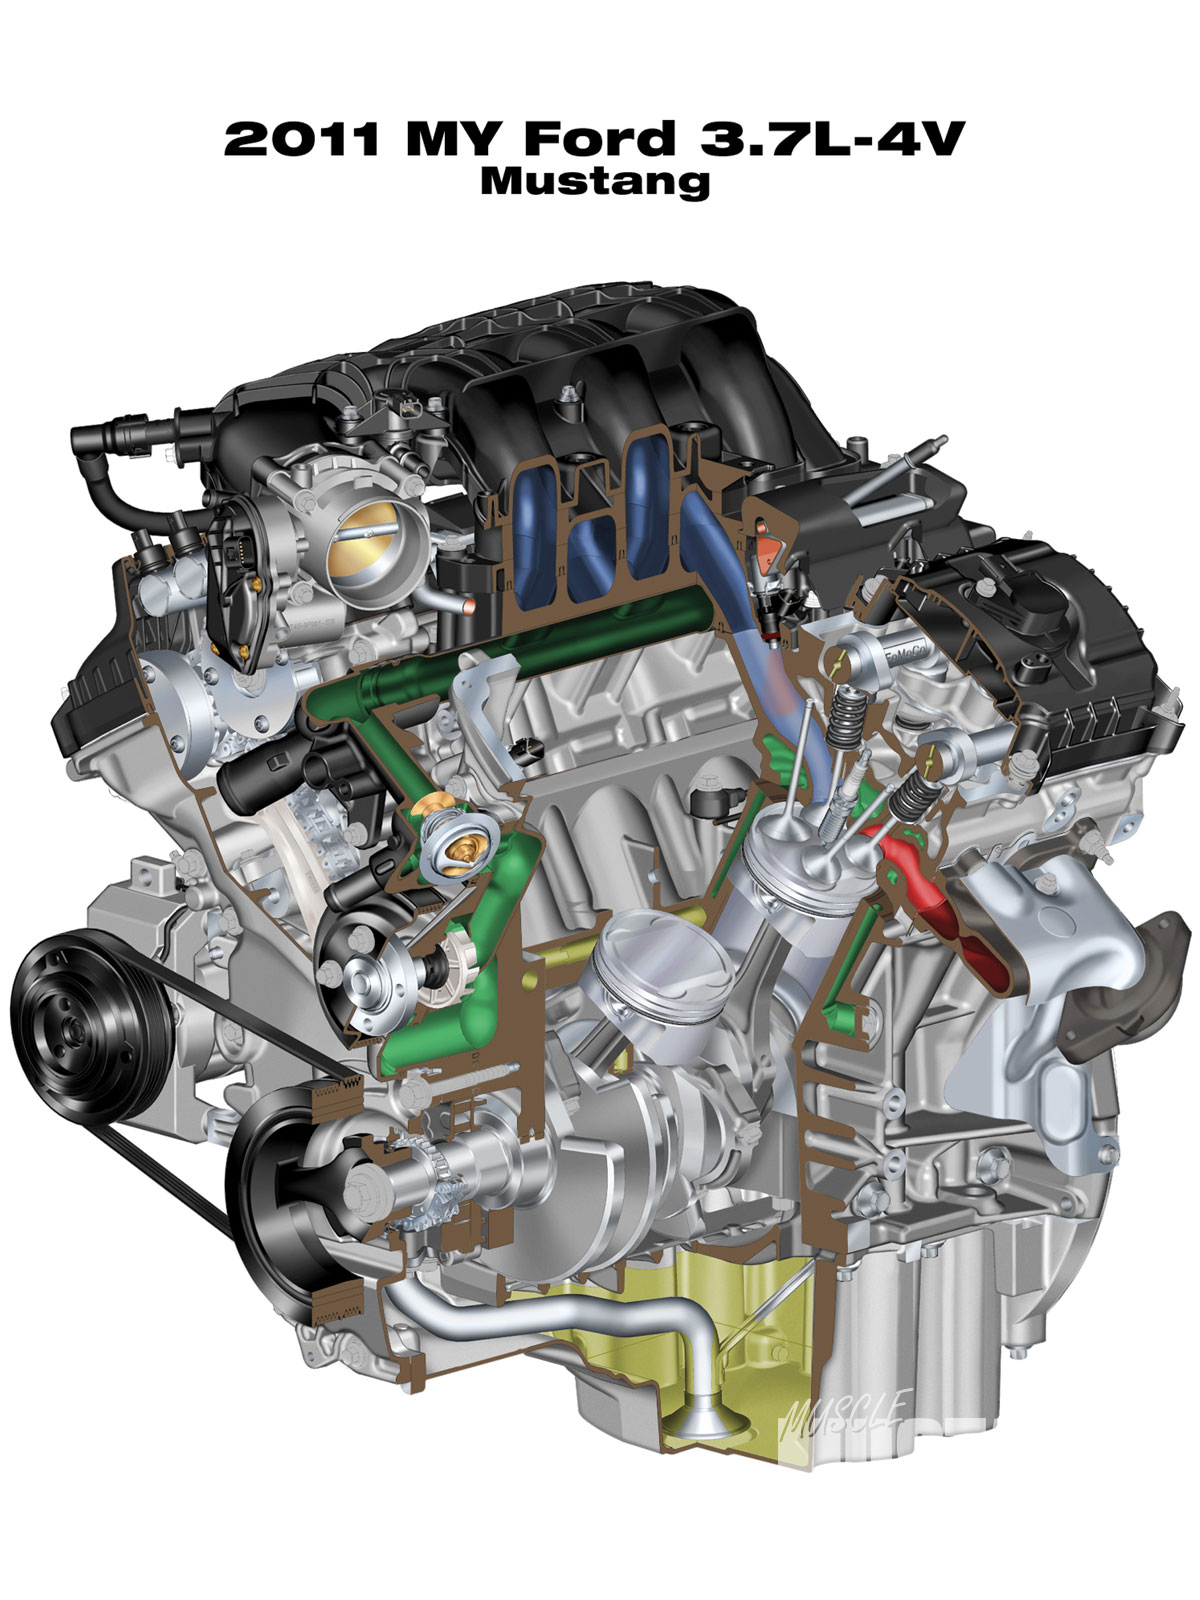 2011 ford mustang 37 timing chain diagram wiring diagram kni 4 6 ford engine timing marks 2011 [ 1200 x 1600 Pixel ]